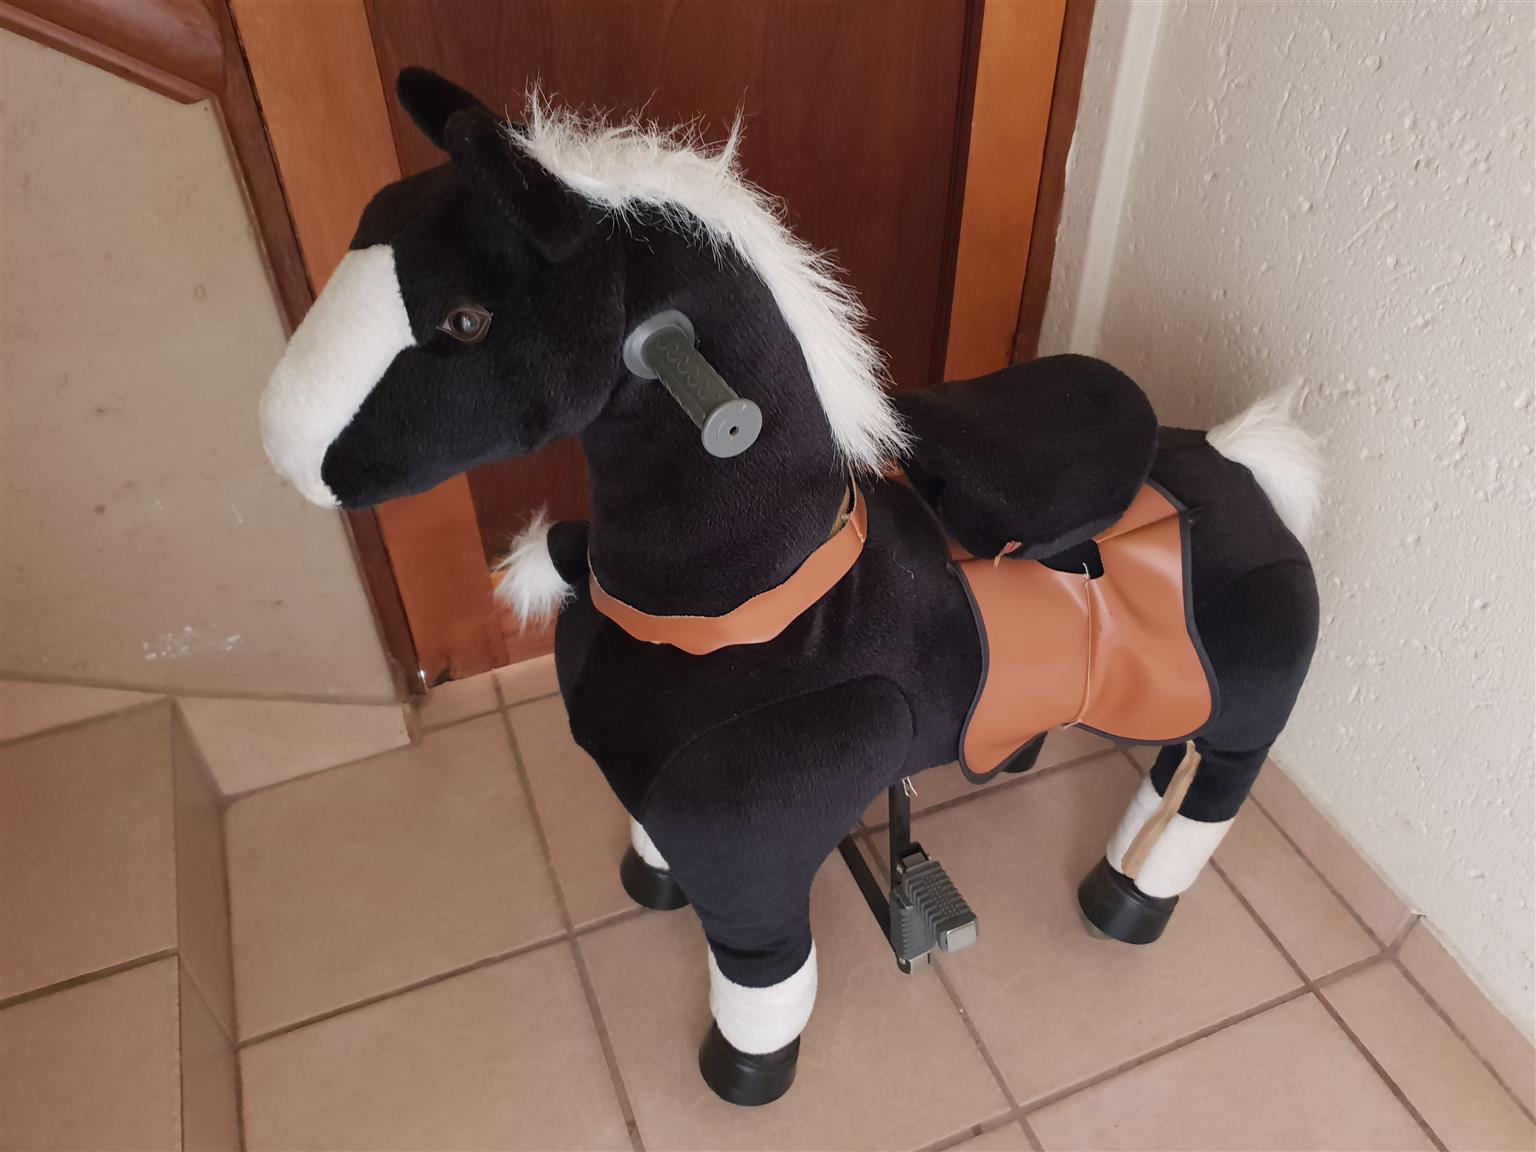 Toy Horse with wheels